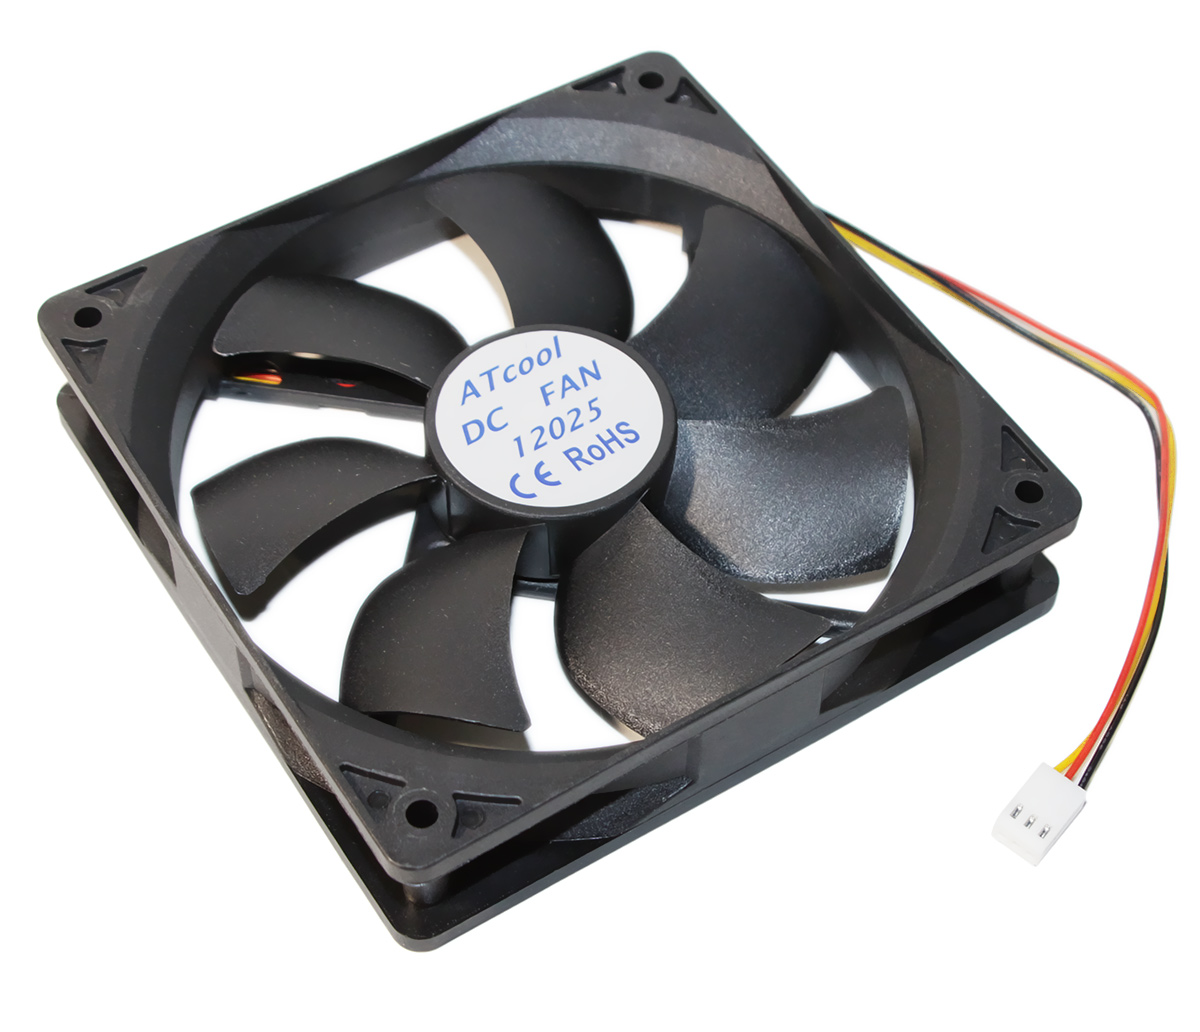 Вентилятор 120 mm ATcool 12025 DC sleeve fan 3pin- 120*120*25мм